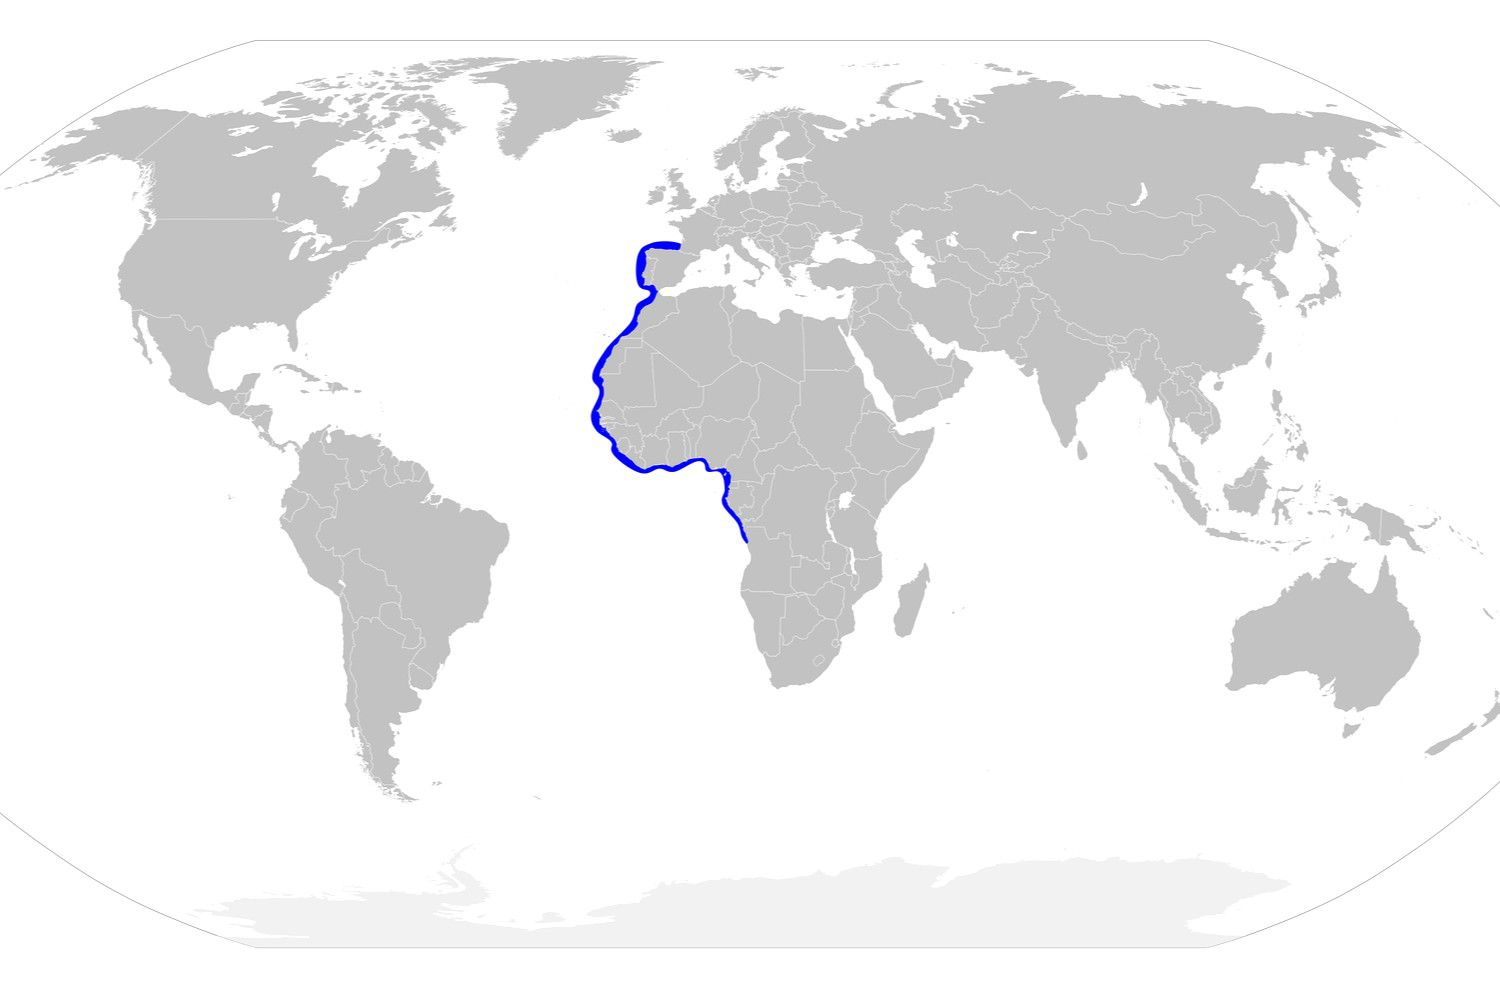 Distribution map for the whitefin hammerhead shark